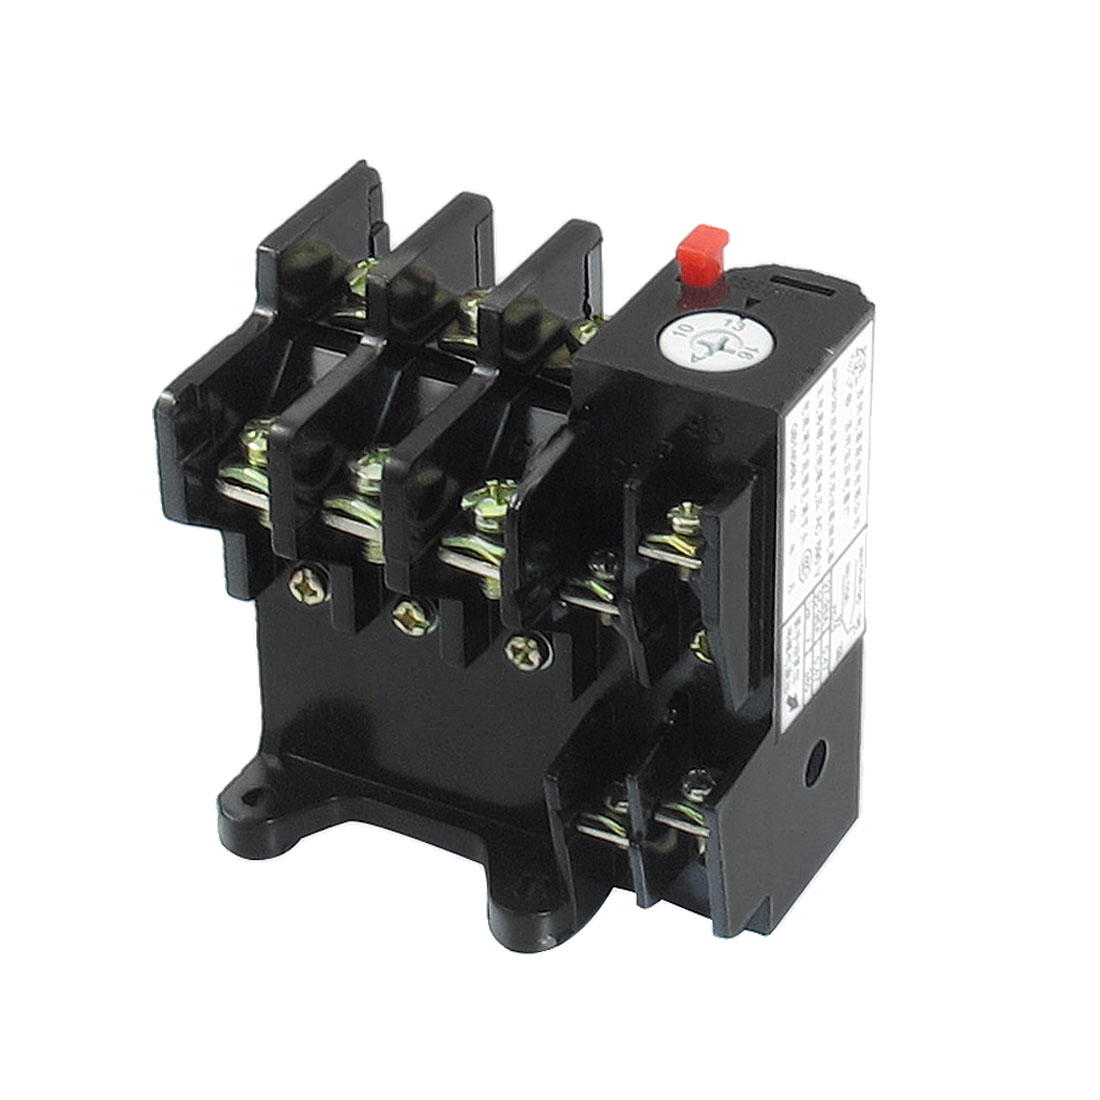 JR36-20 16Amp 10A-16A Adjustable 3 Pole Thermal Overload Relay 1NO 1NC